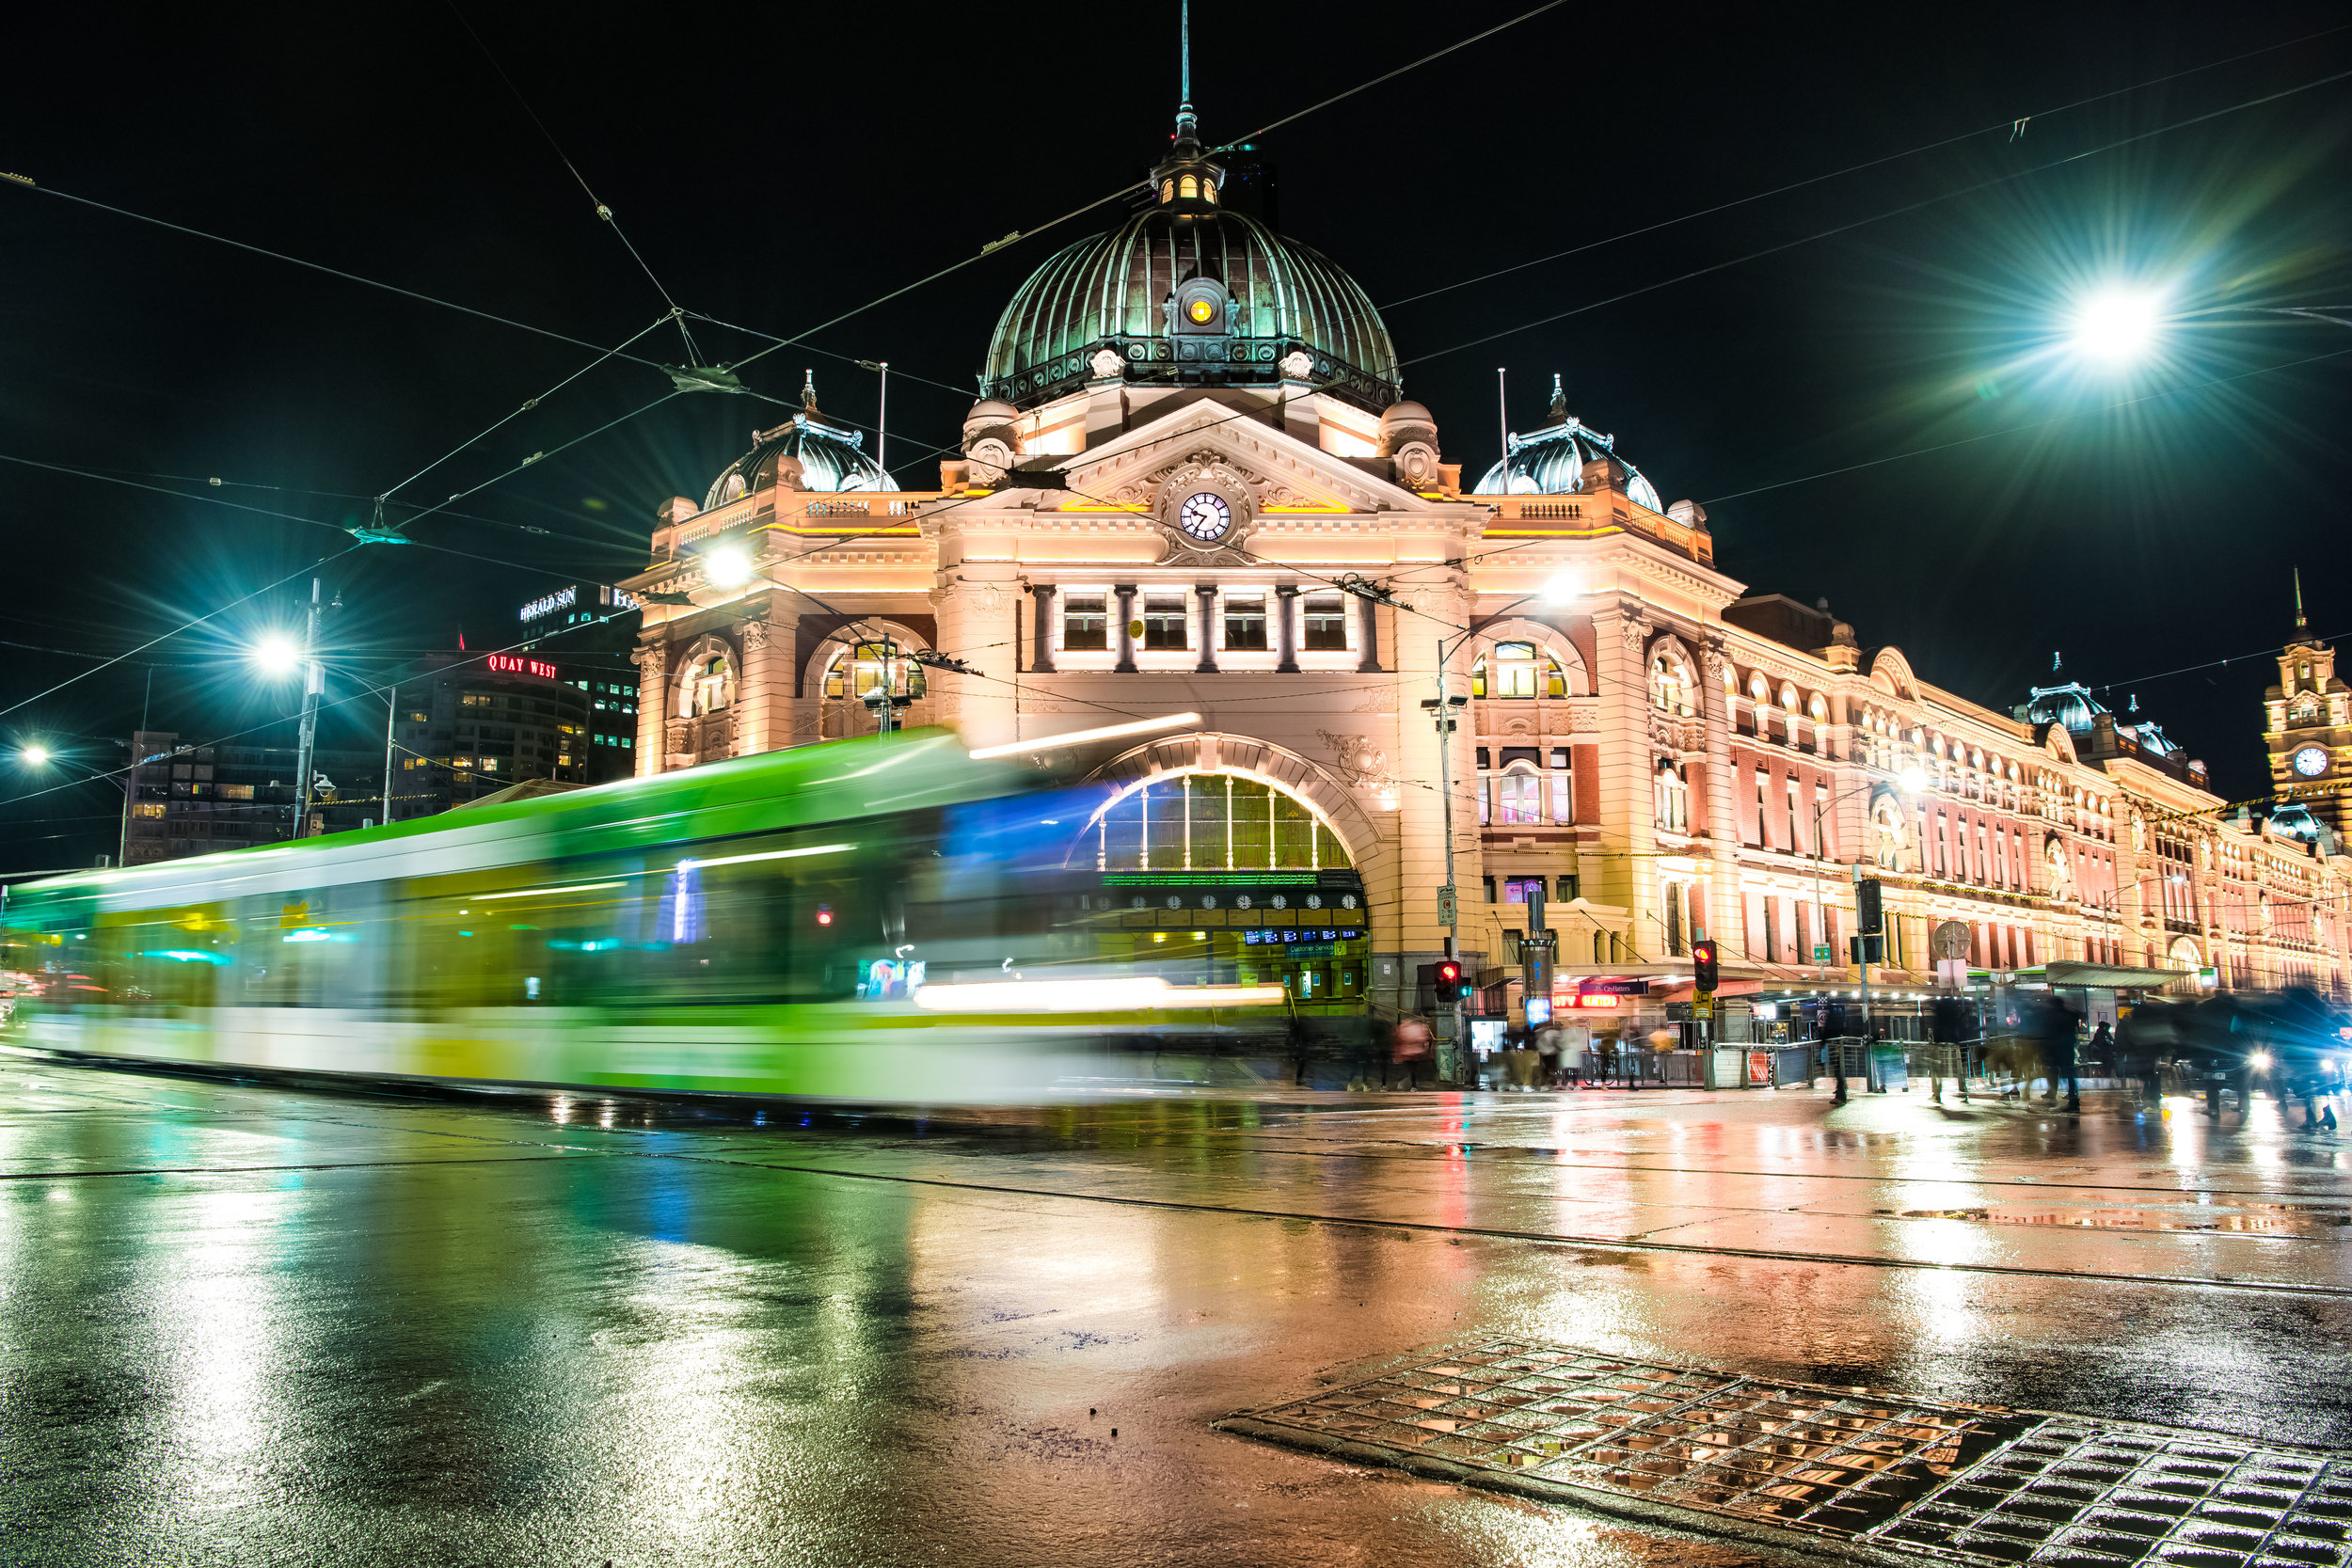 Iconic Melbourne: A tram passes in front of Flinders Street Station